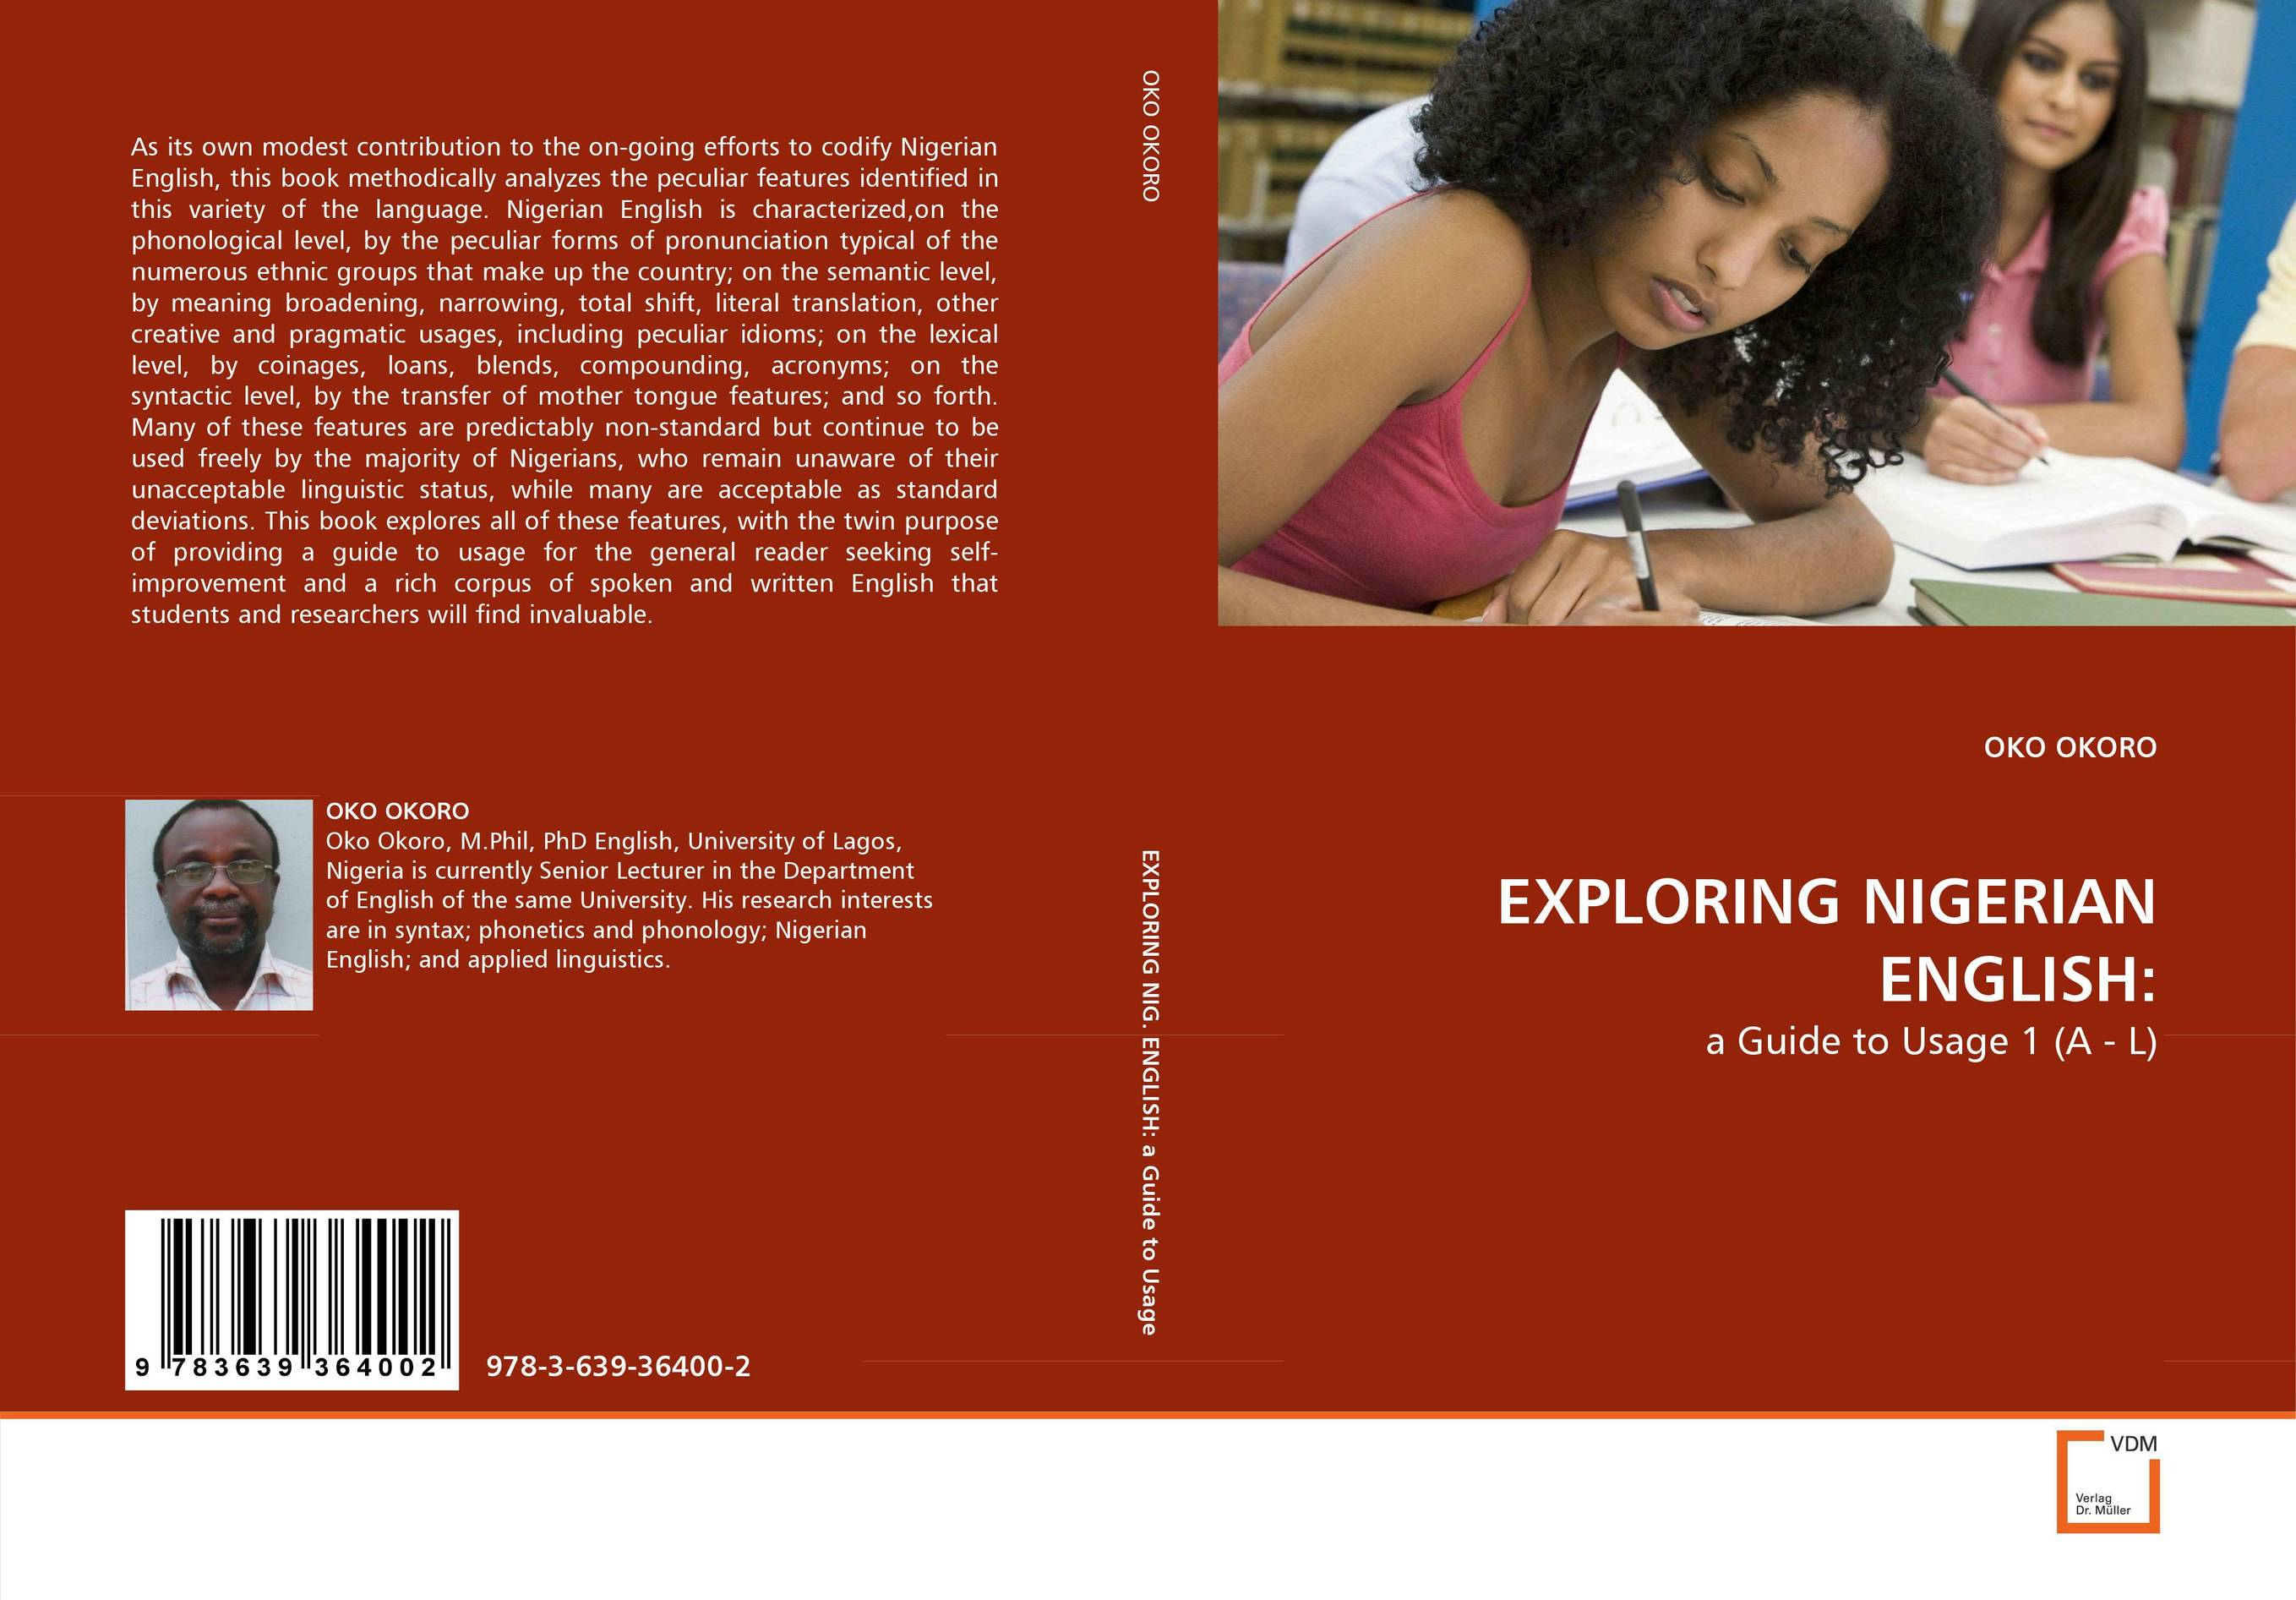 EXPLORING NIGERIAN ENGLISH: ghanaian and nigerian english some comparative phonological features